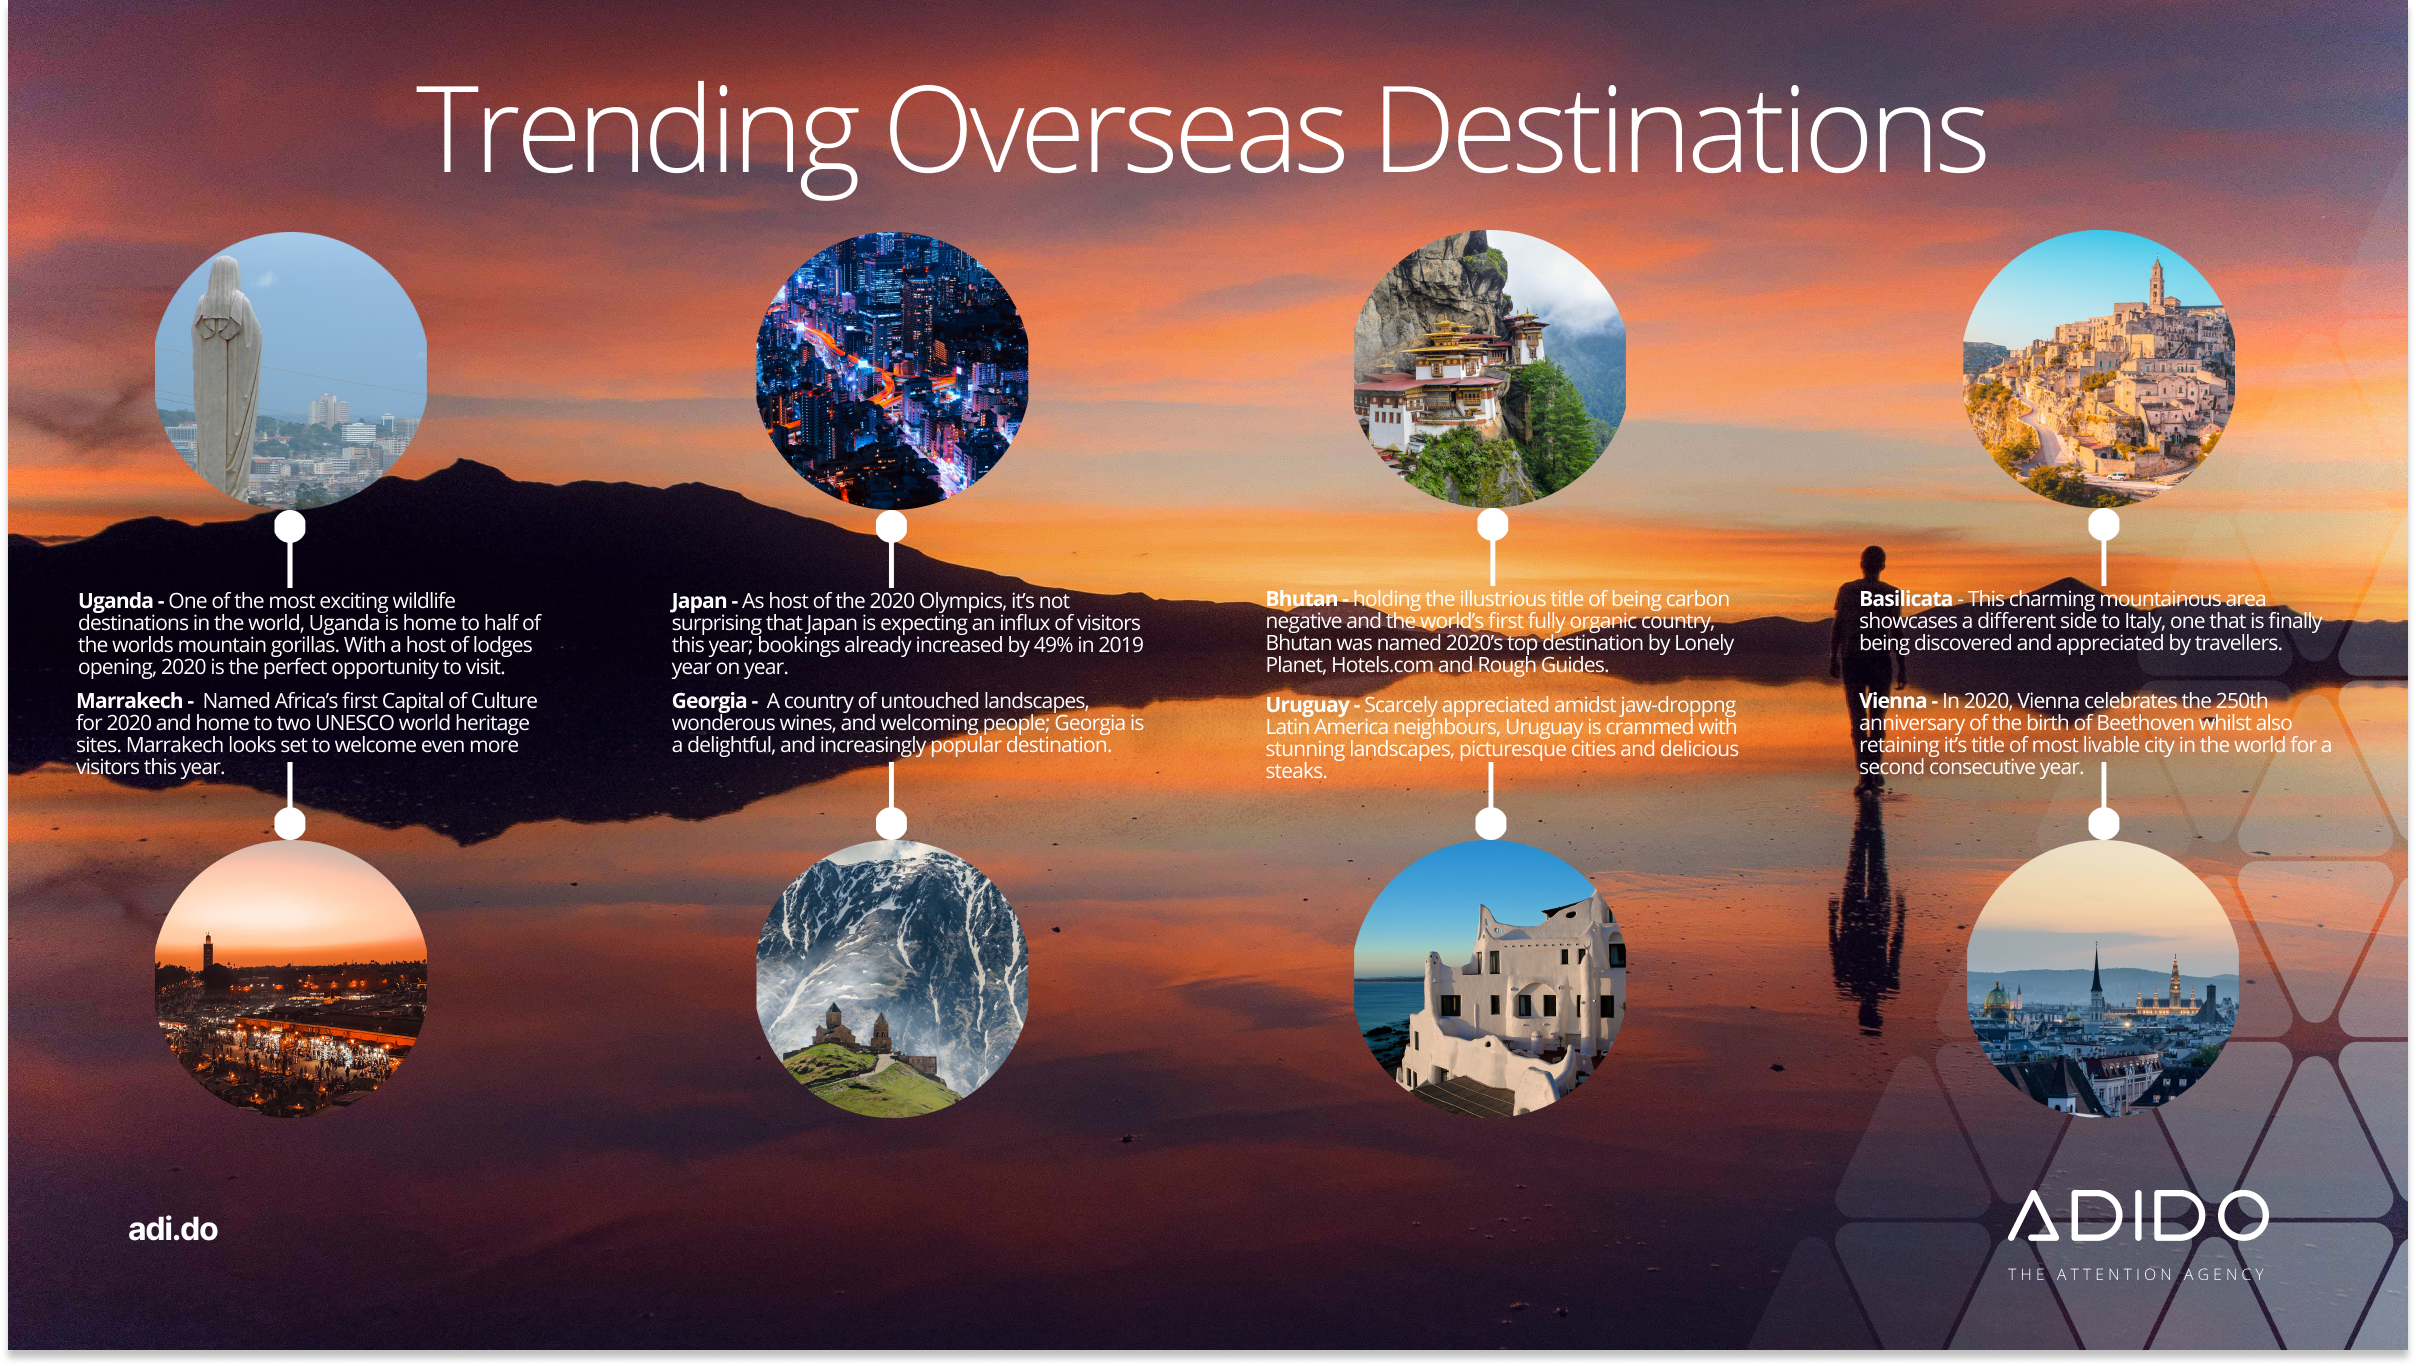 trending overseas destinations in 2020